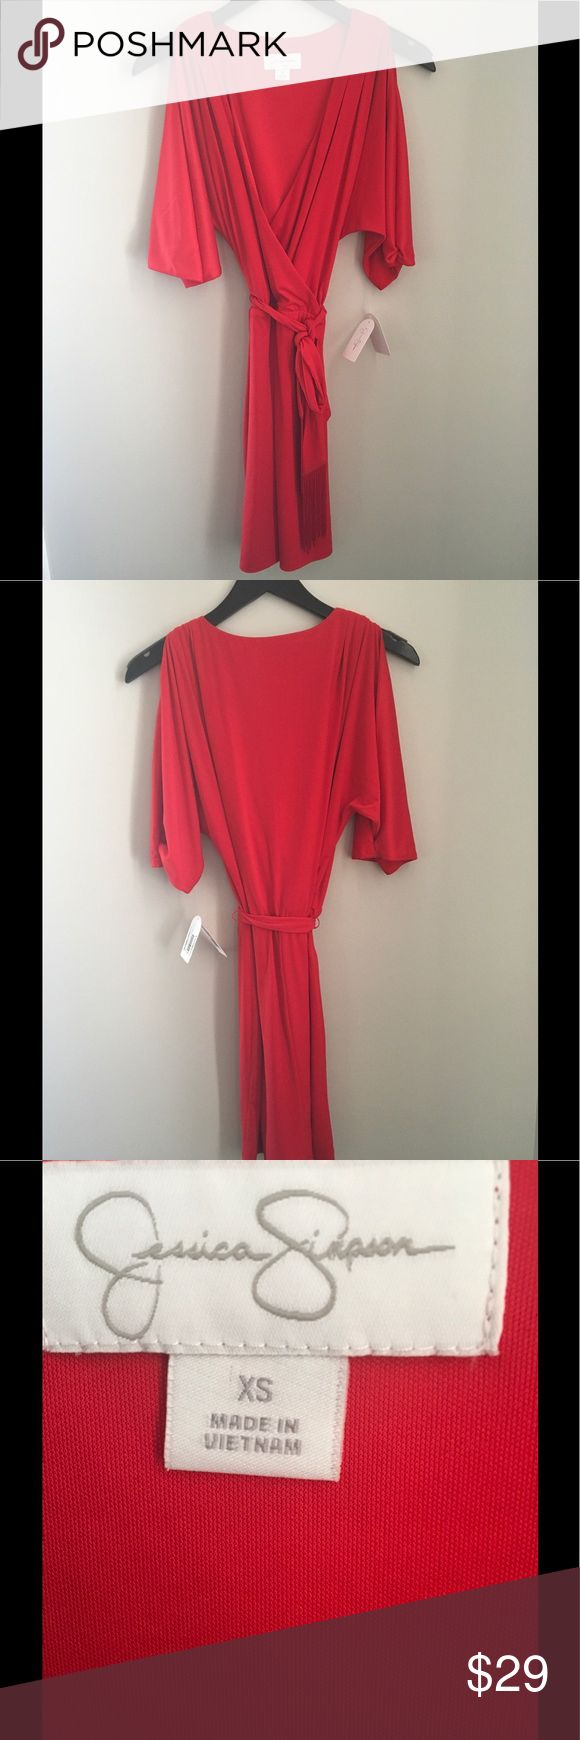 Jessica Simpson red wrap dress And this great wrap dress by Jessica Simpson! This dress has the cut out shoulders that are hot this season! This dress is finished off with the tie with fringe!! Is an extra small and fits like a 2 or 4. Jessica Simpson Dresses